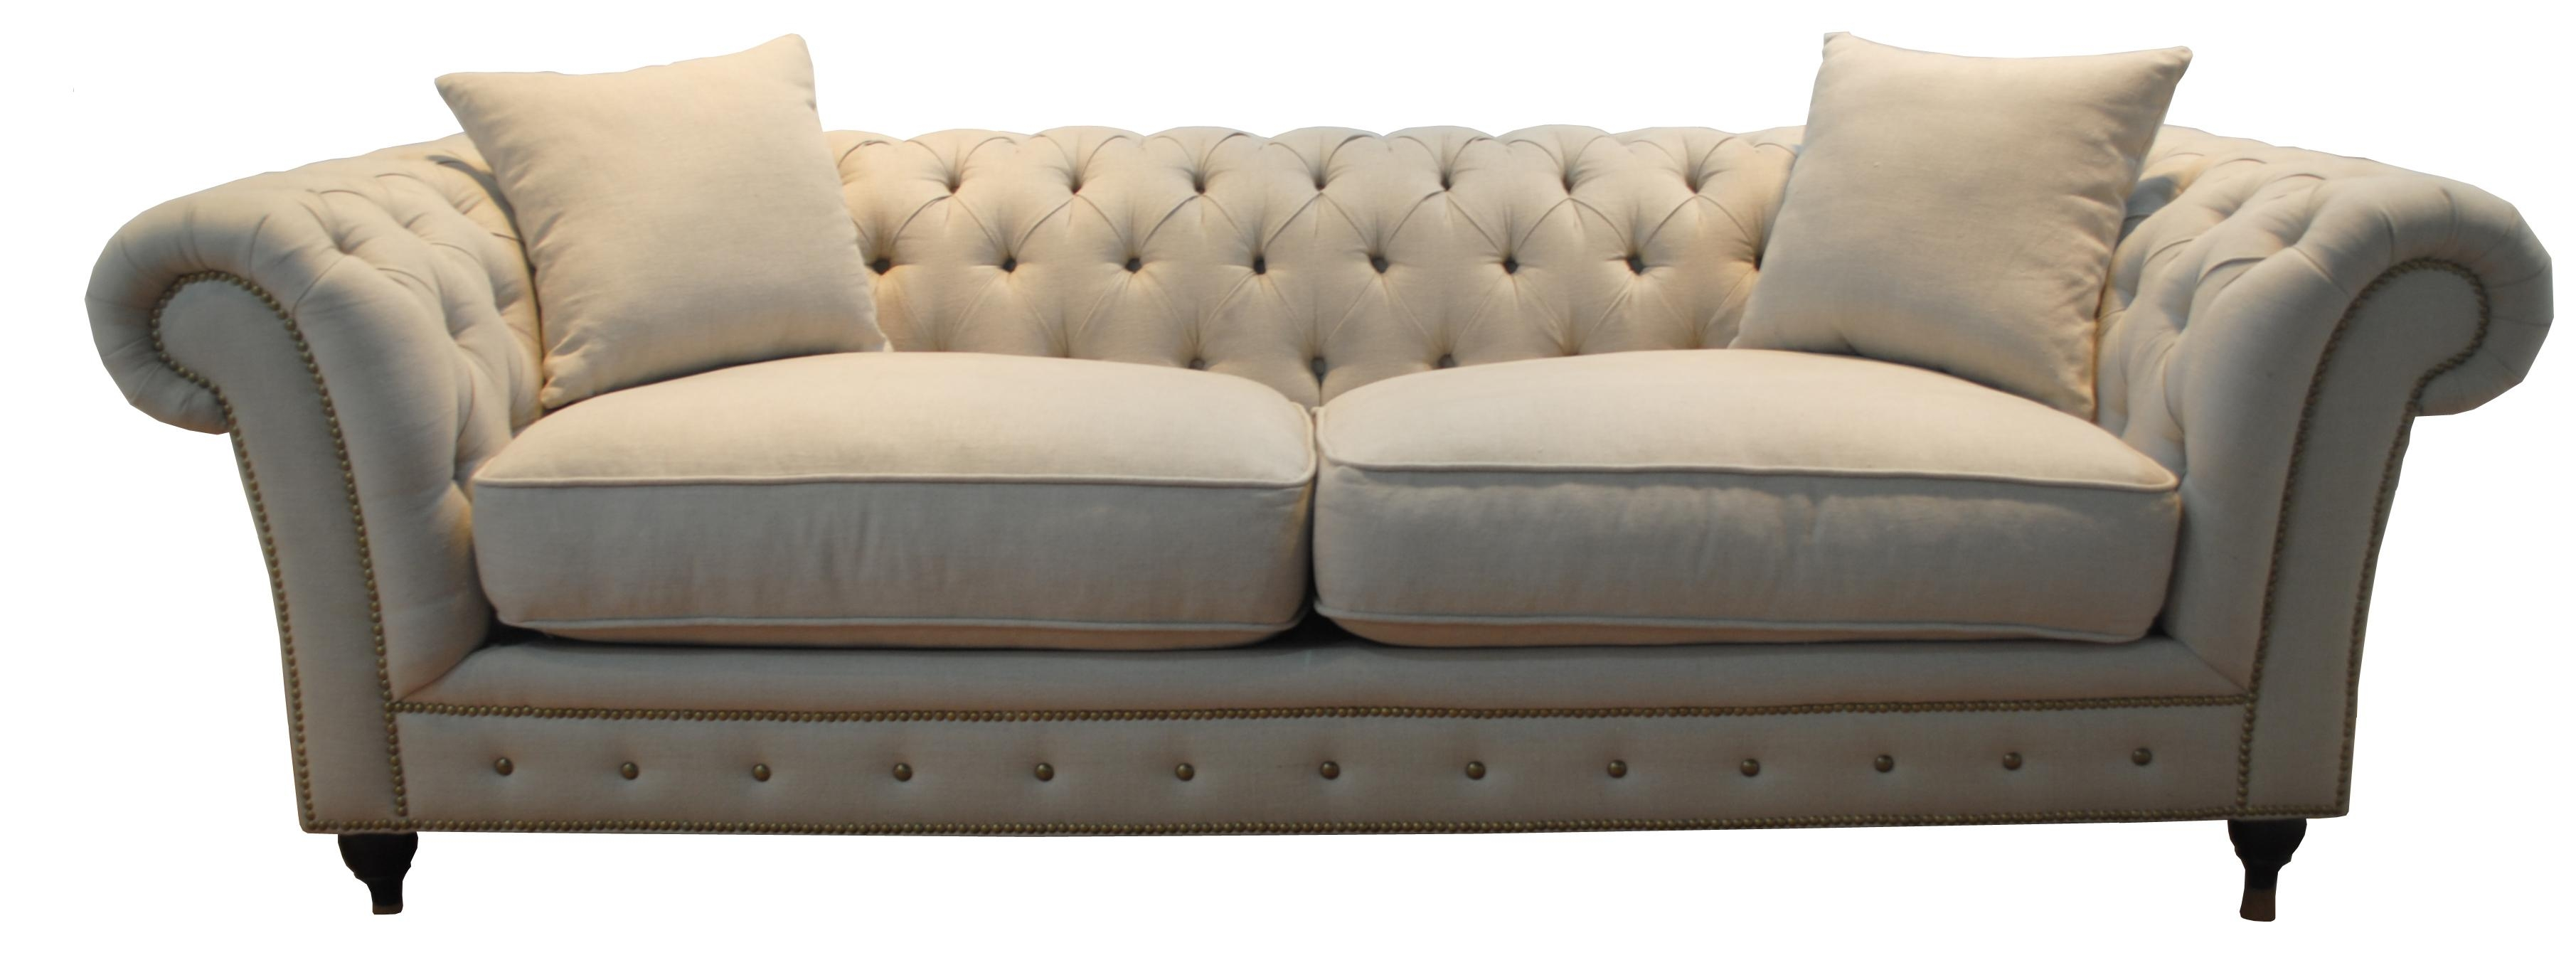 Room Furniture French Style Various Fabric Color Wooden Sofa Set Within  French Style Sofa (Image